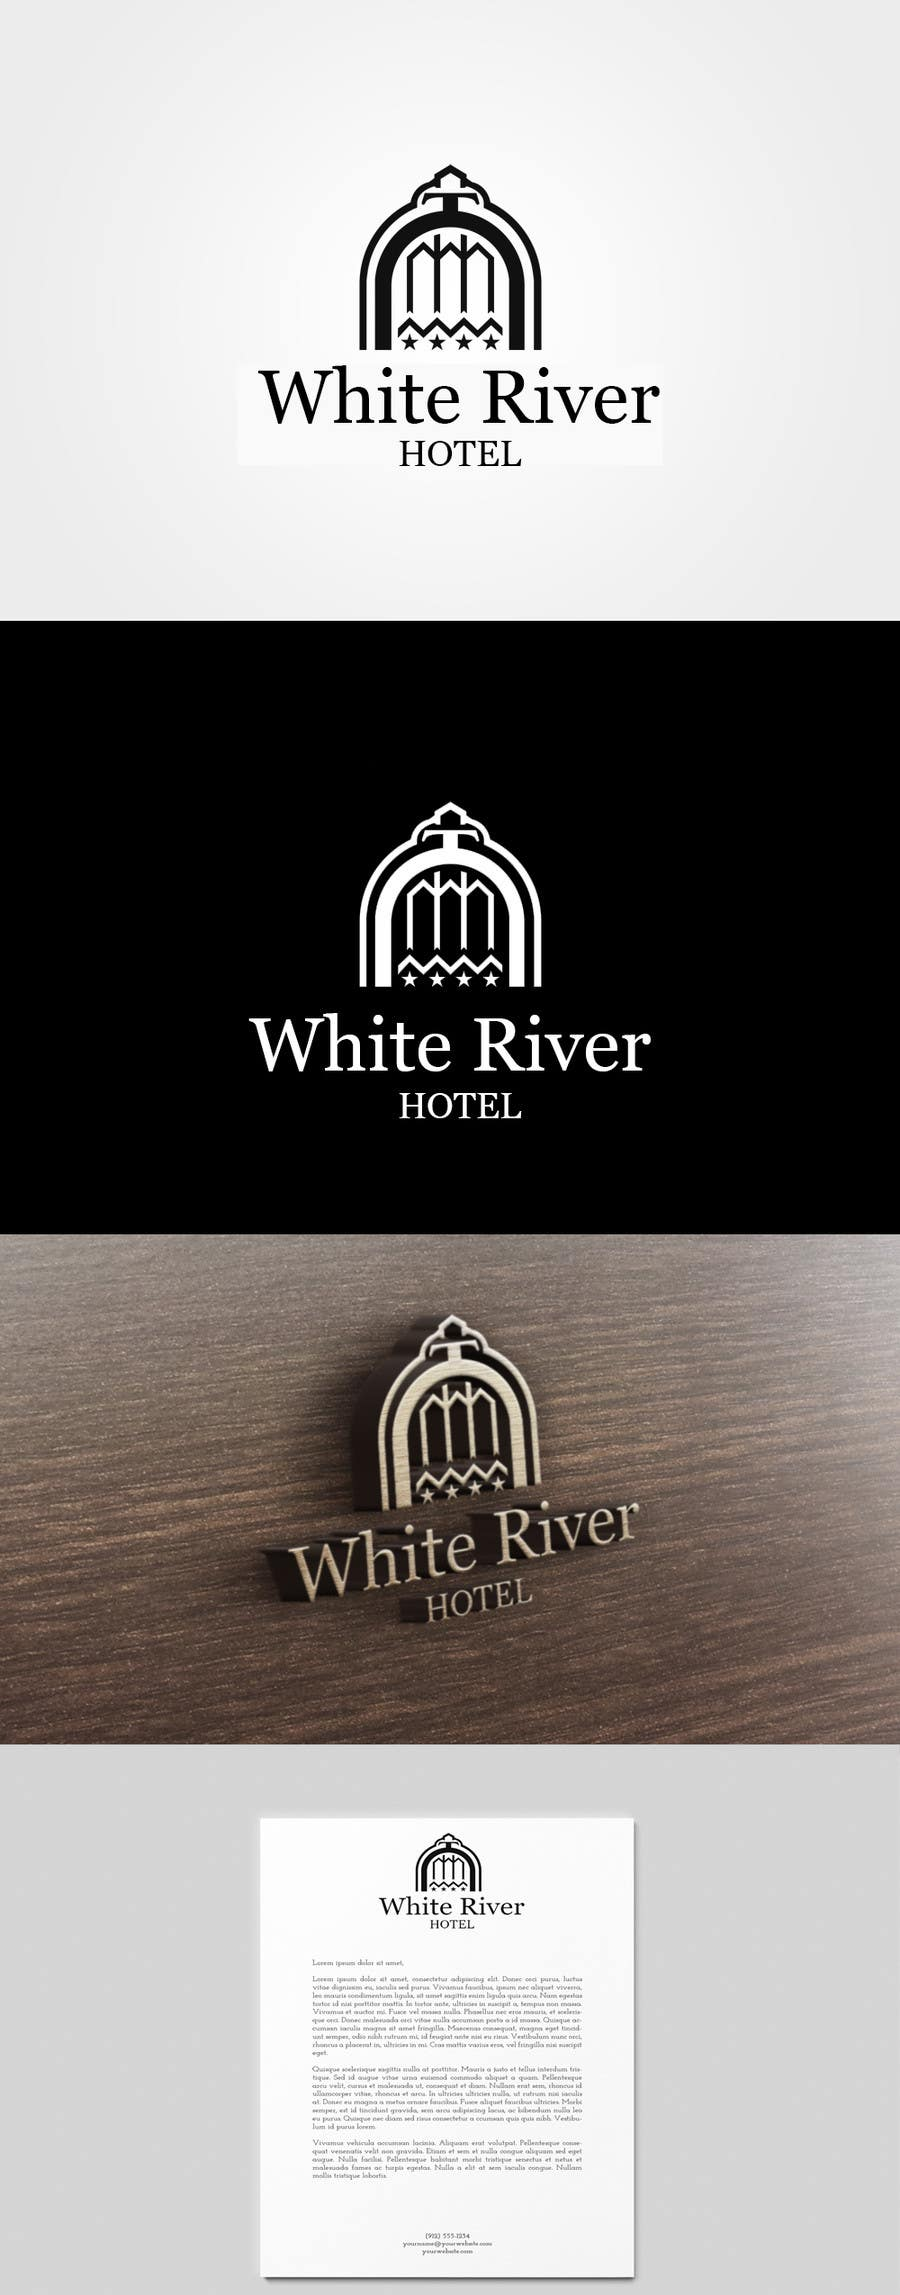 #84 for Design a Logo for White River Hotel. by Deeeniska